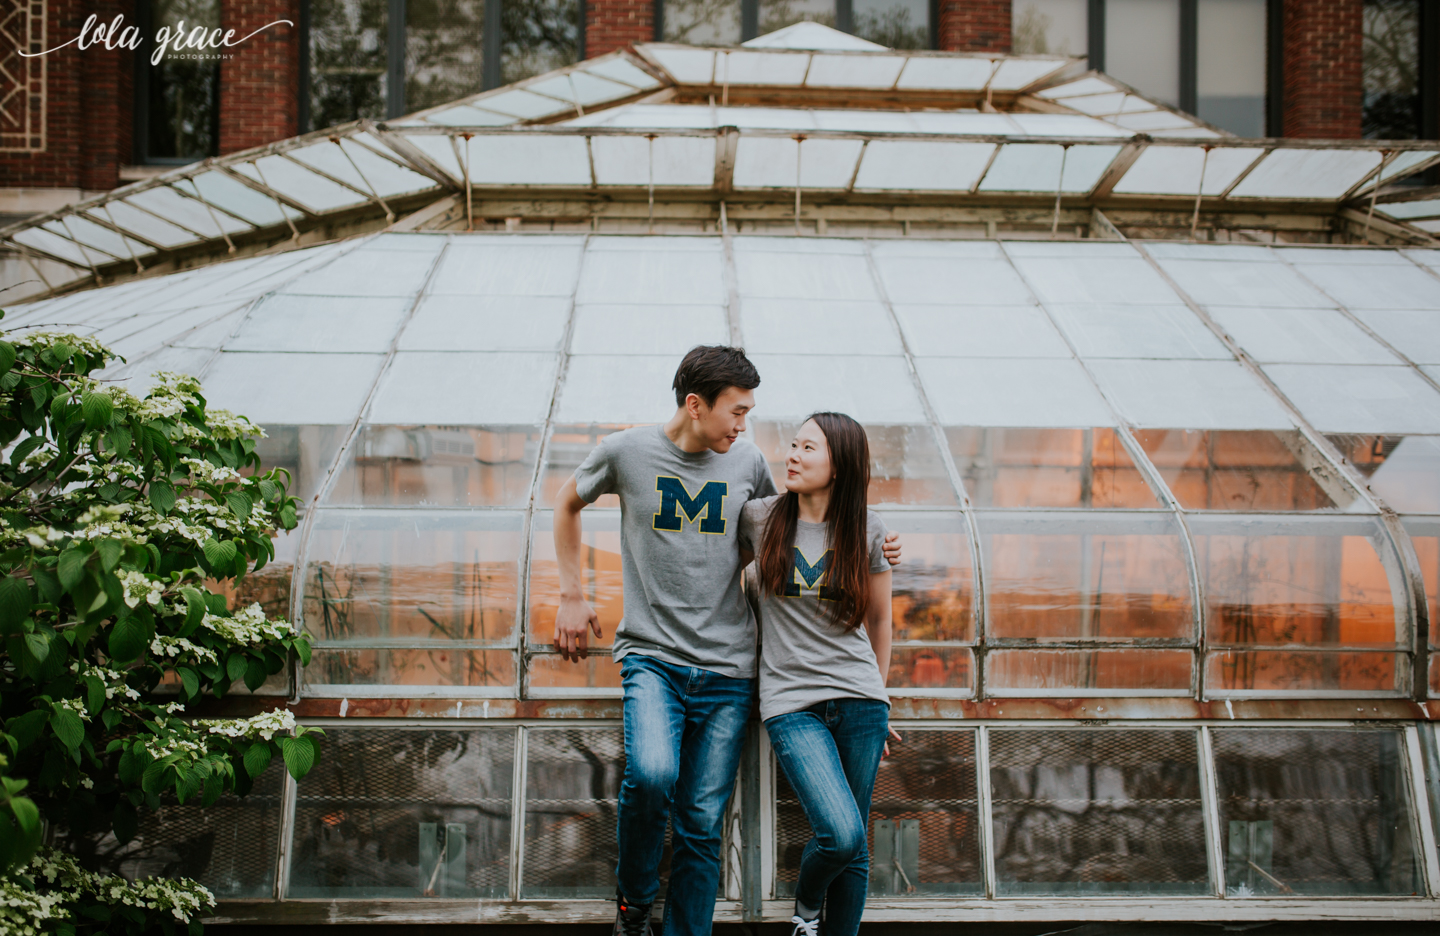 spring-ann-arbor-engagement-session-university-of-michigan-2.jpg